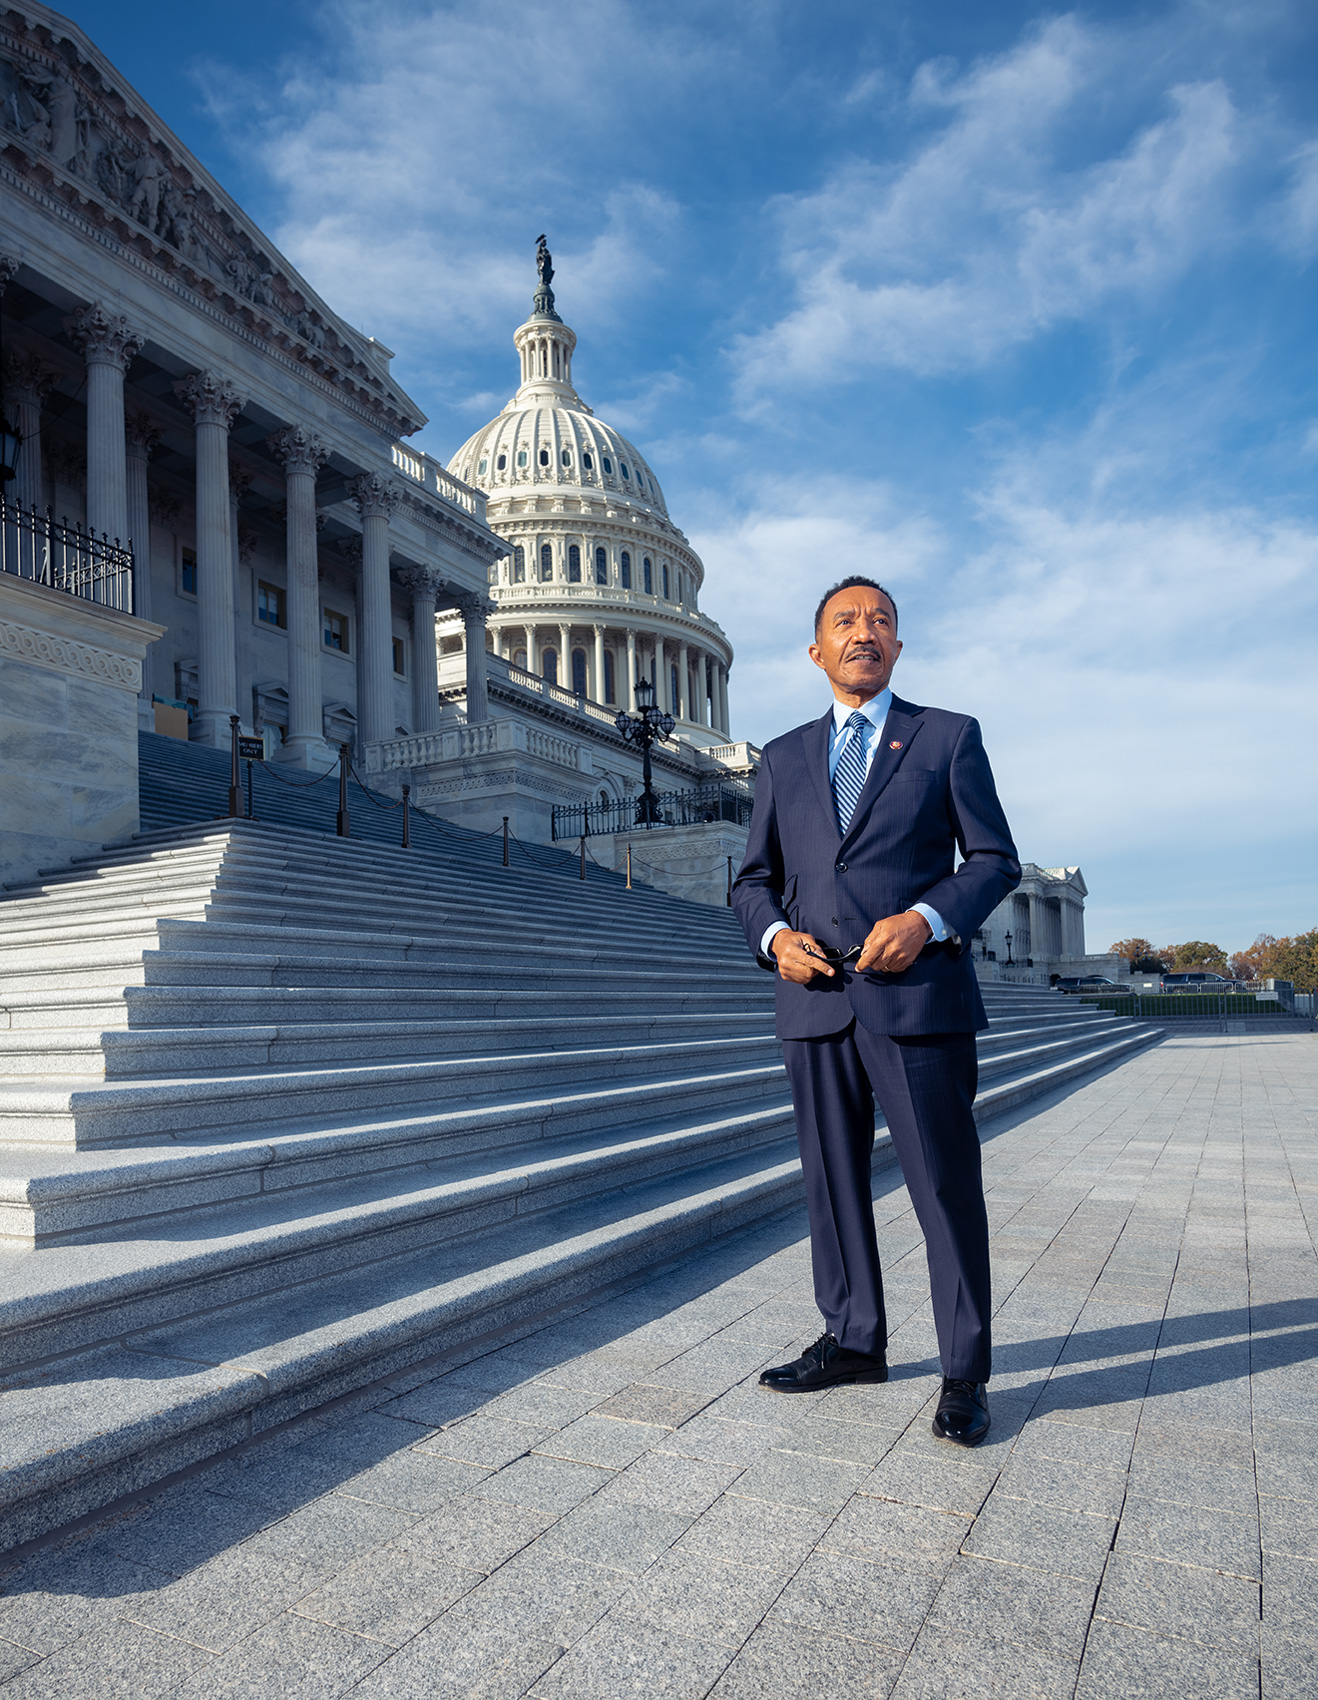 Congressman Kweisi Mfume standing on the steps of the US Capitol